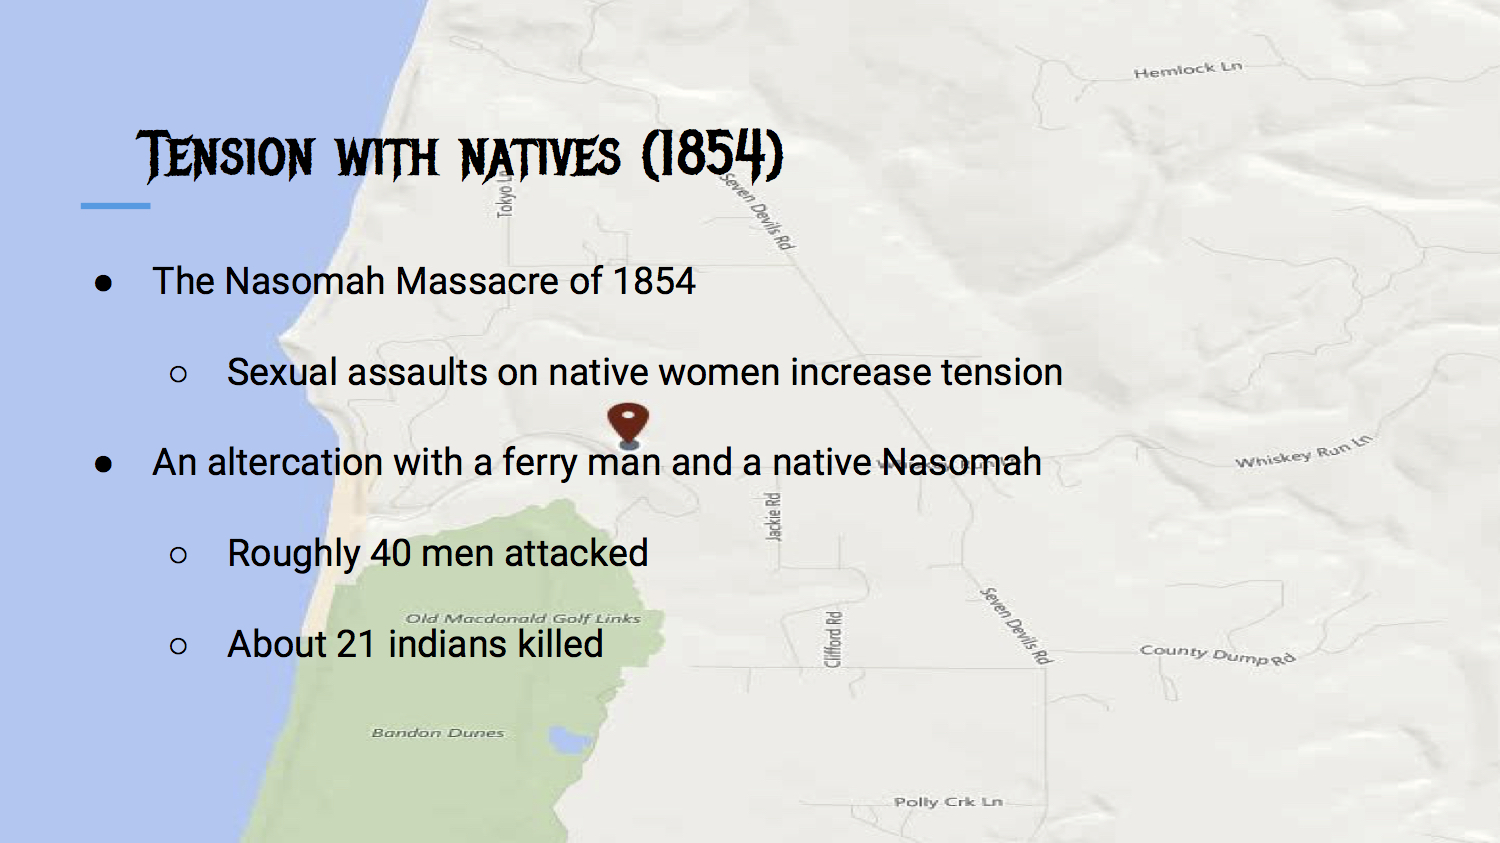 Tension With Natives (1854)